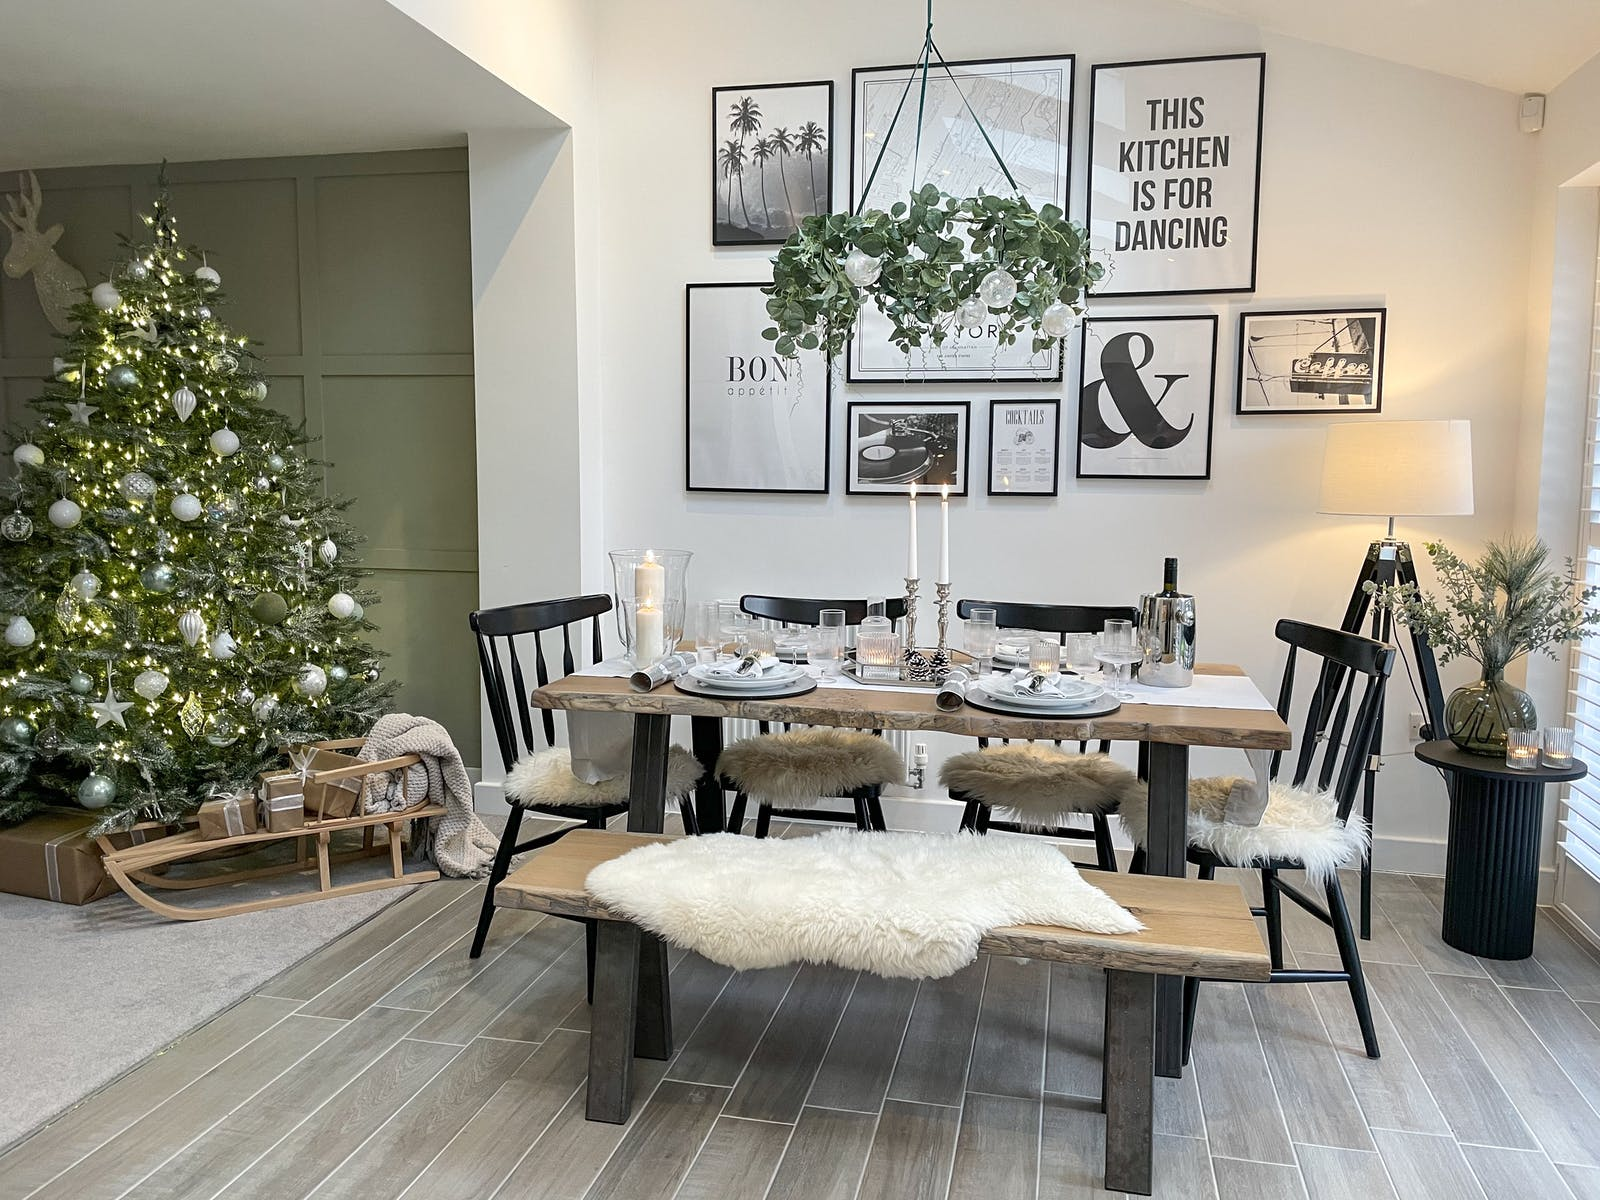 Dining area with large Christmas tree in the background